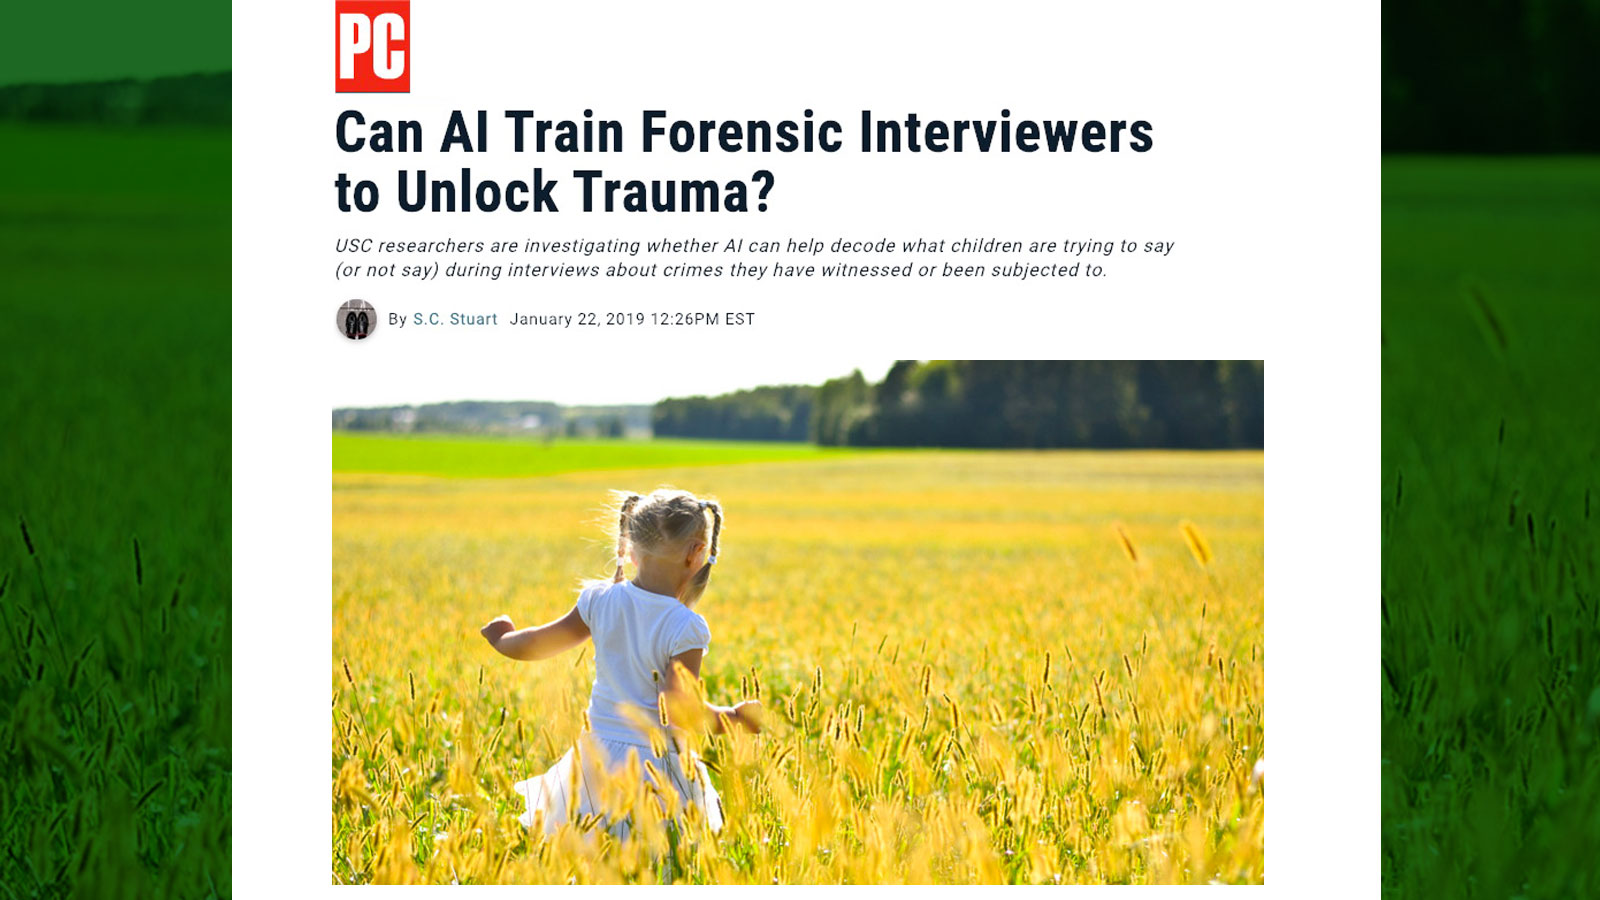 Can AI train forensic interviewers to unlock trauma?